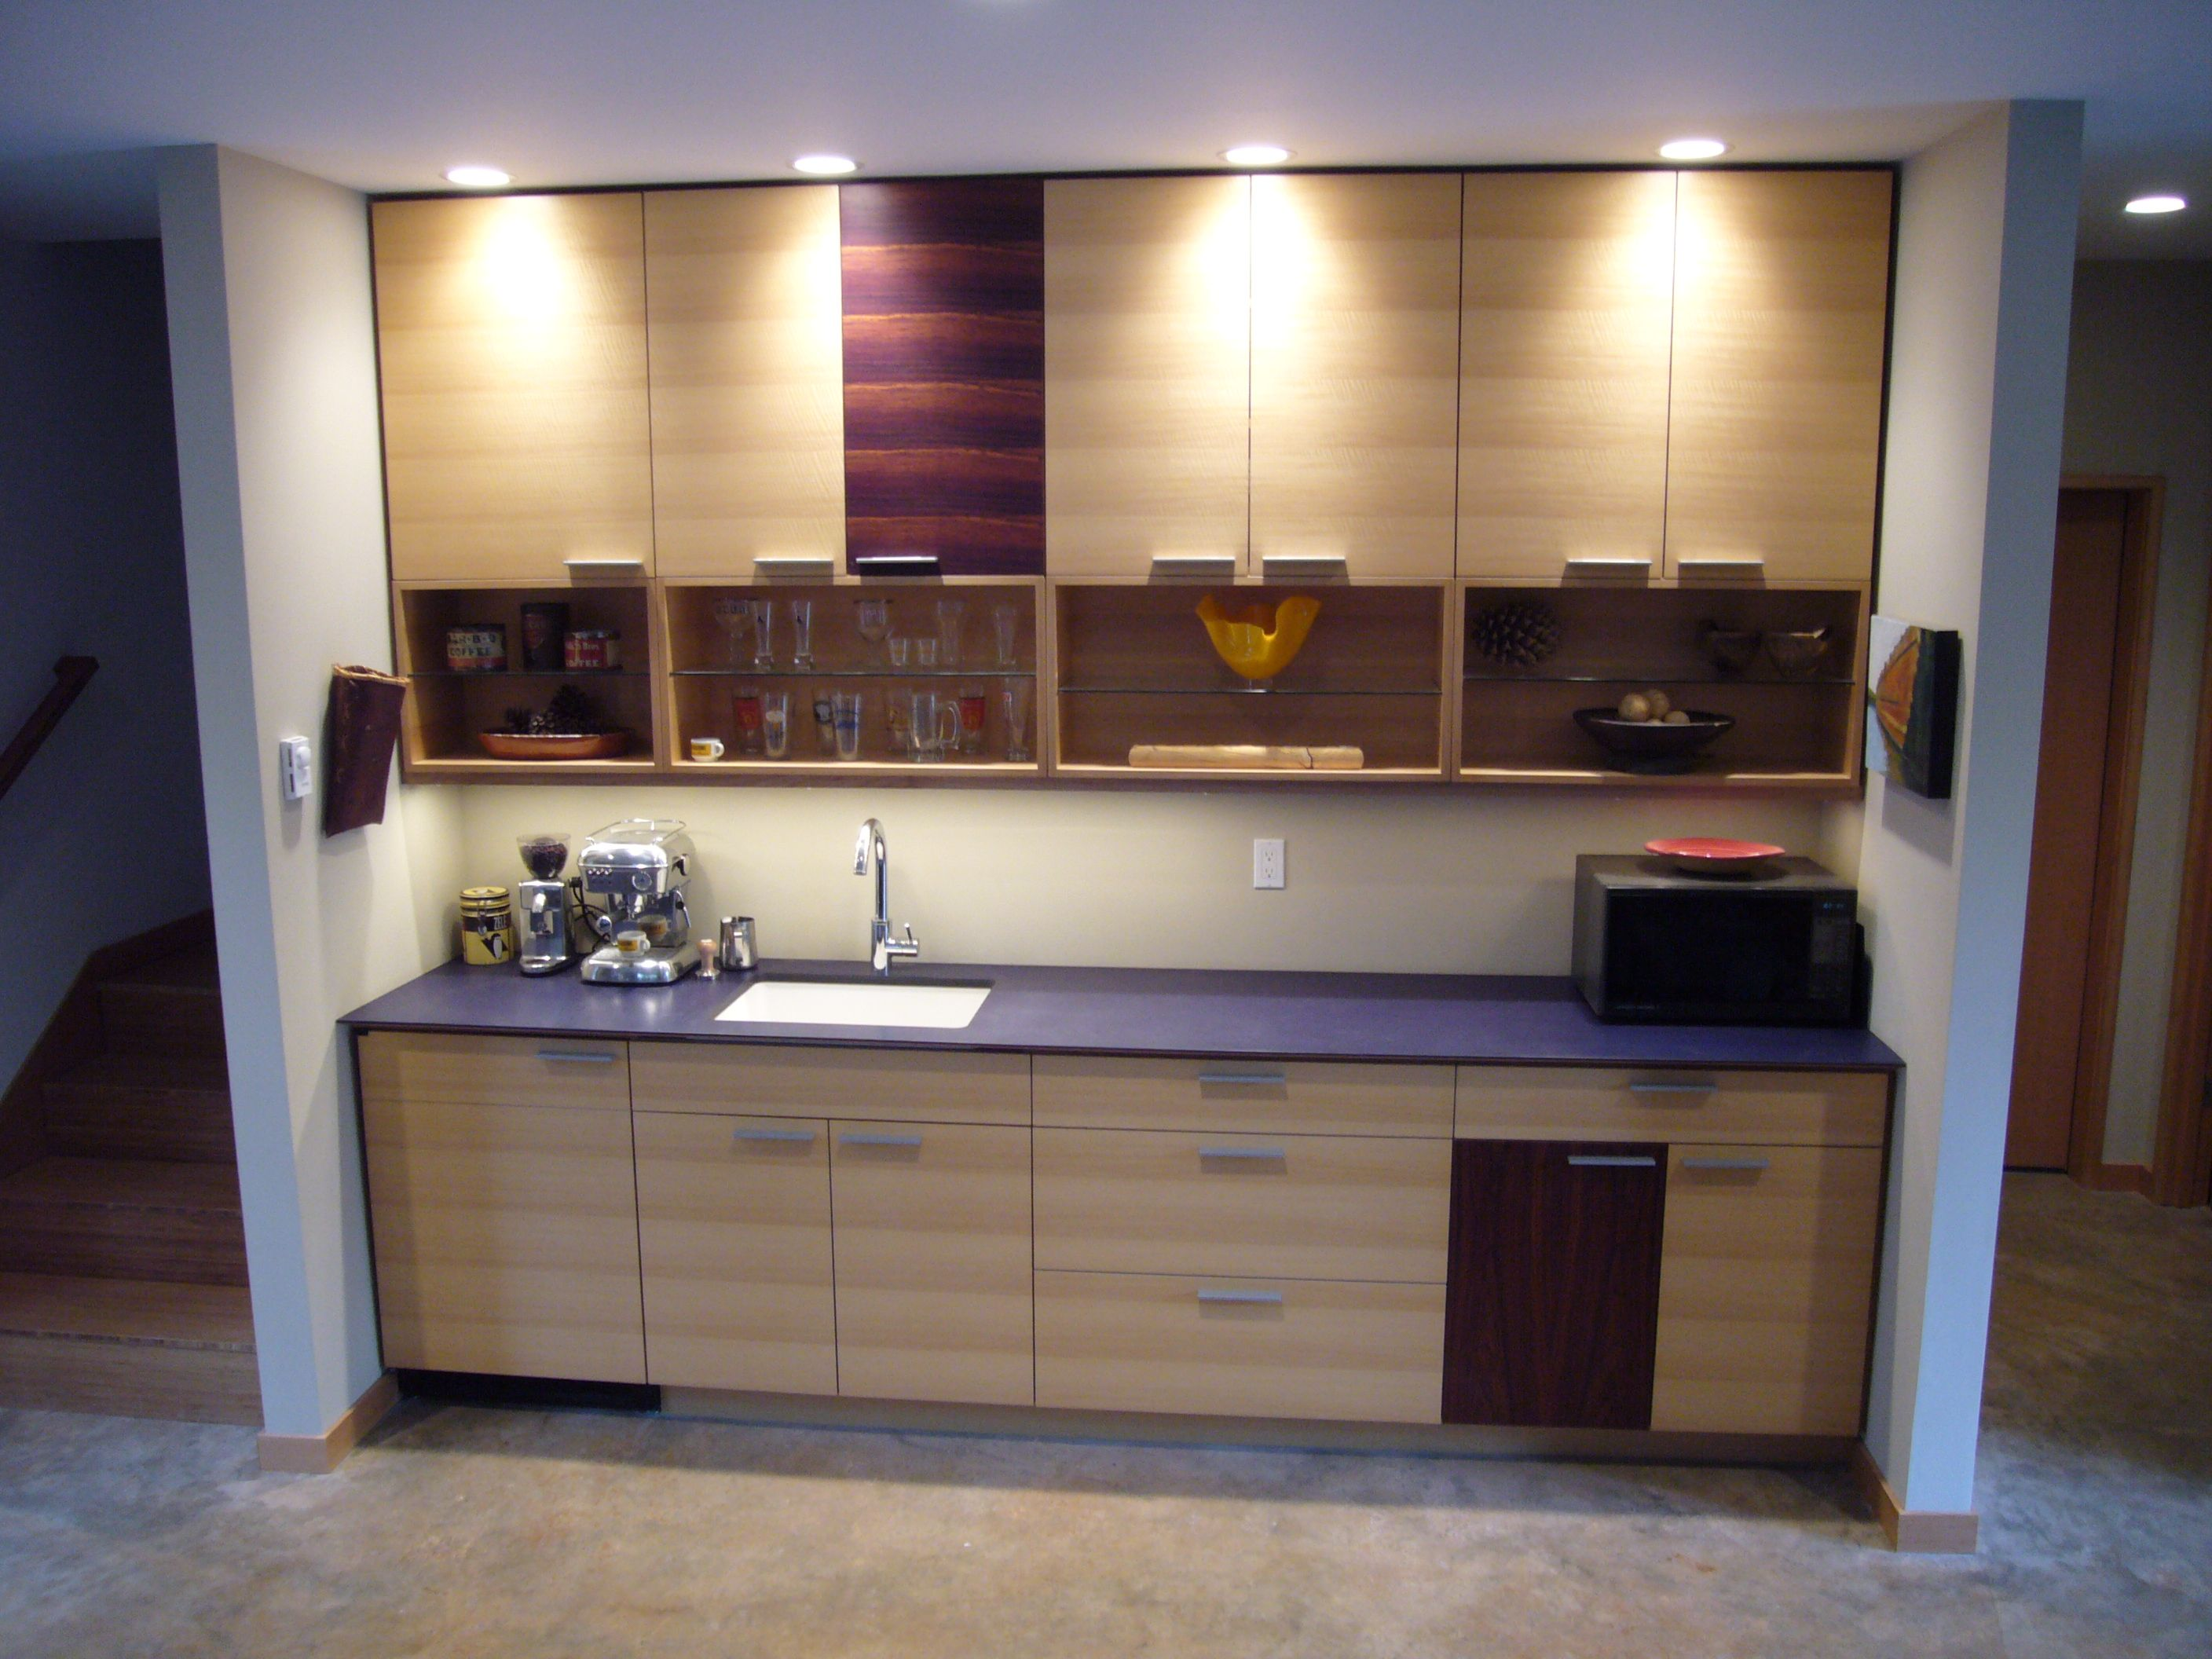 Impeccable Office Office Kitchen Kitchenette A Office Medium Size Office Kitchenette Small Kitchenette Ideas Basement Small Office Kitchenette Ideas